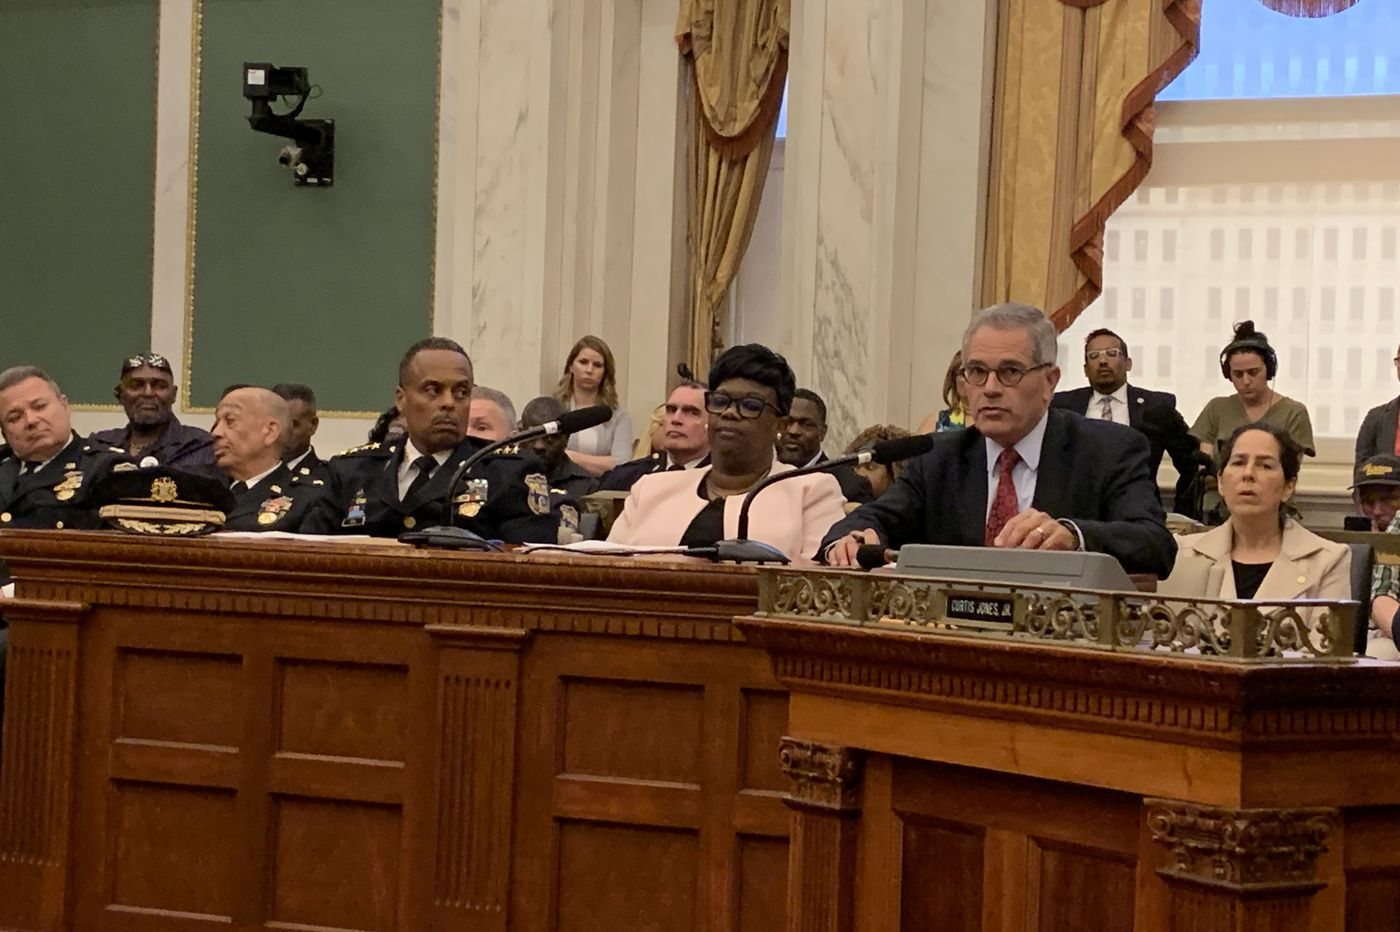 How to stem Philly's gun violence? Officials discuss obstacles, strategies at City Hall